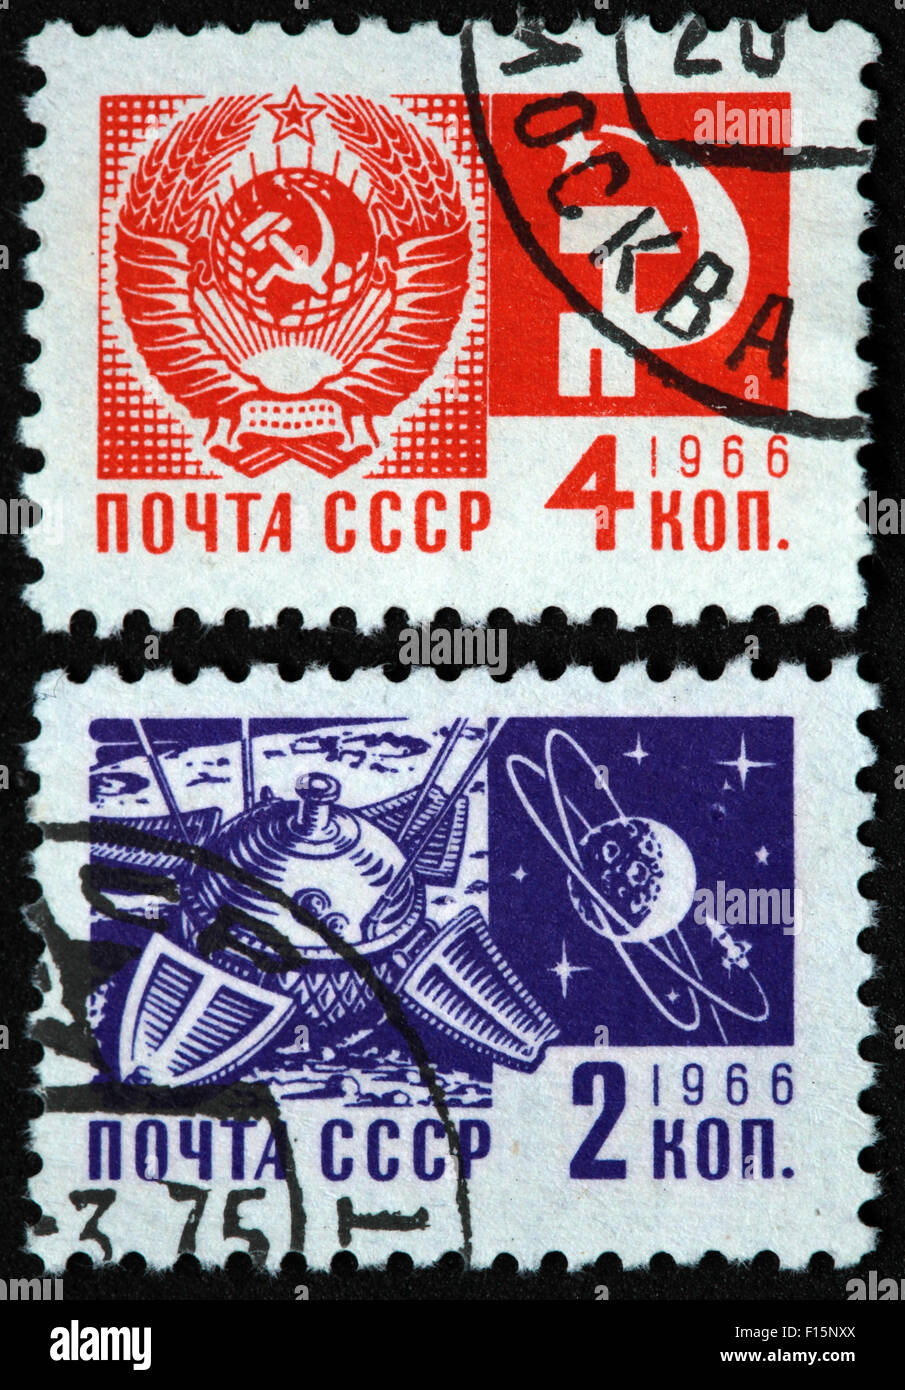 4 and 2 Kon Kopek  Mockba 1966 CCCP  USSR space stamps - Stock Image